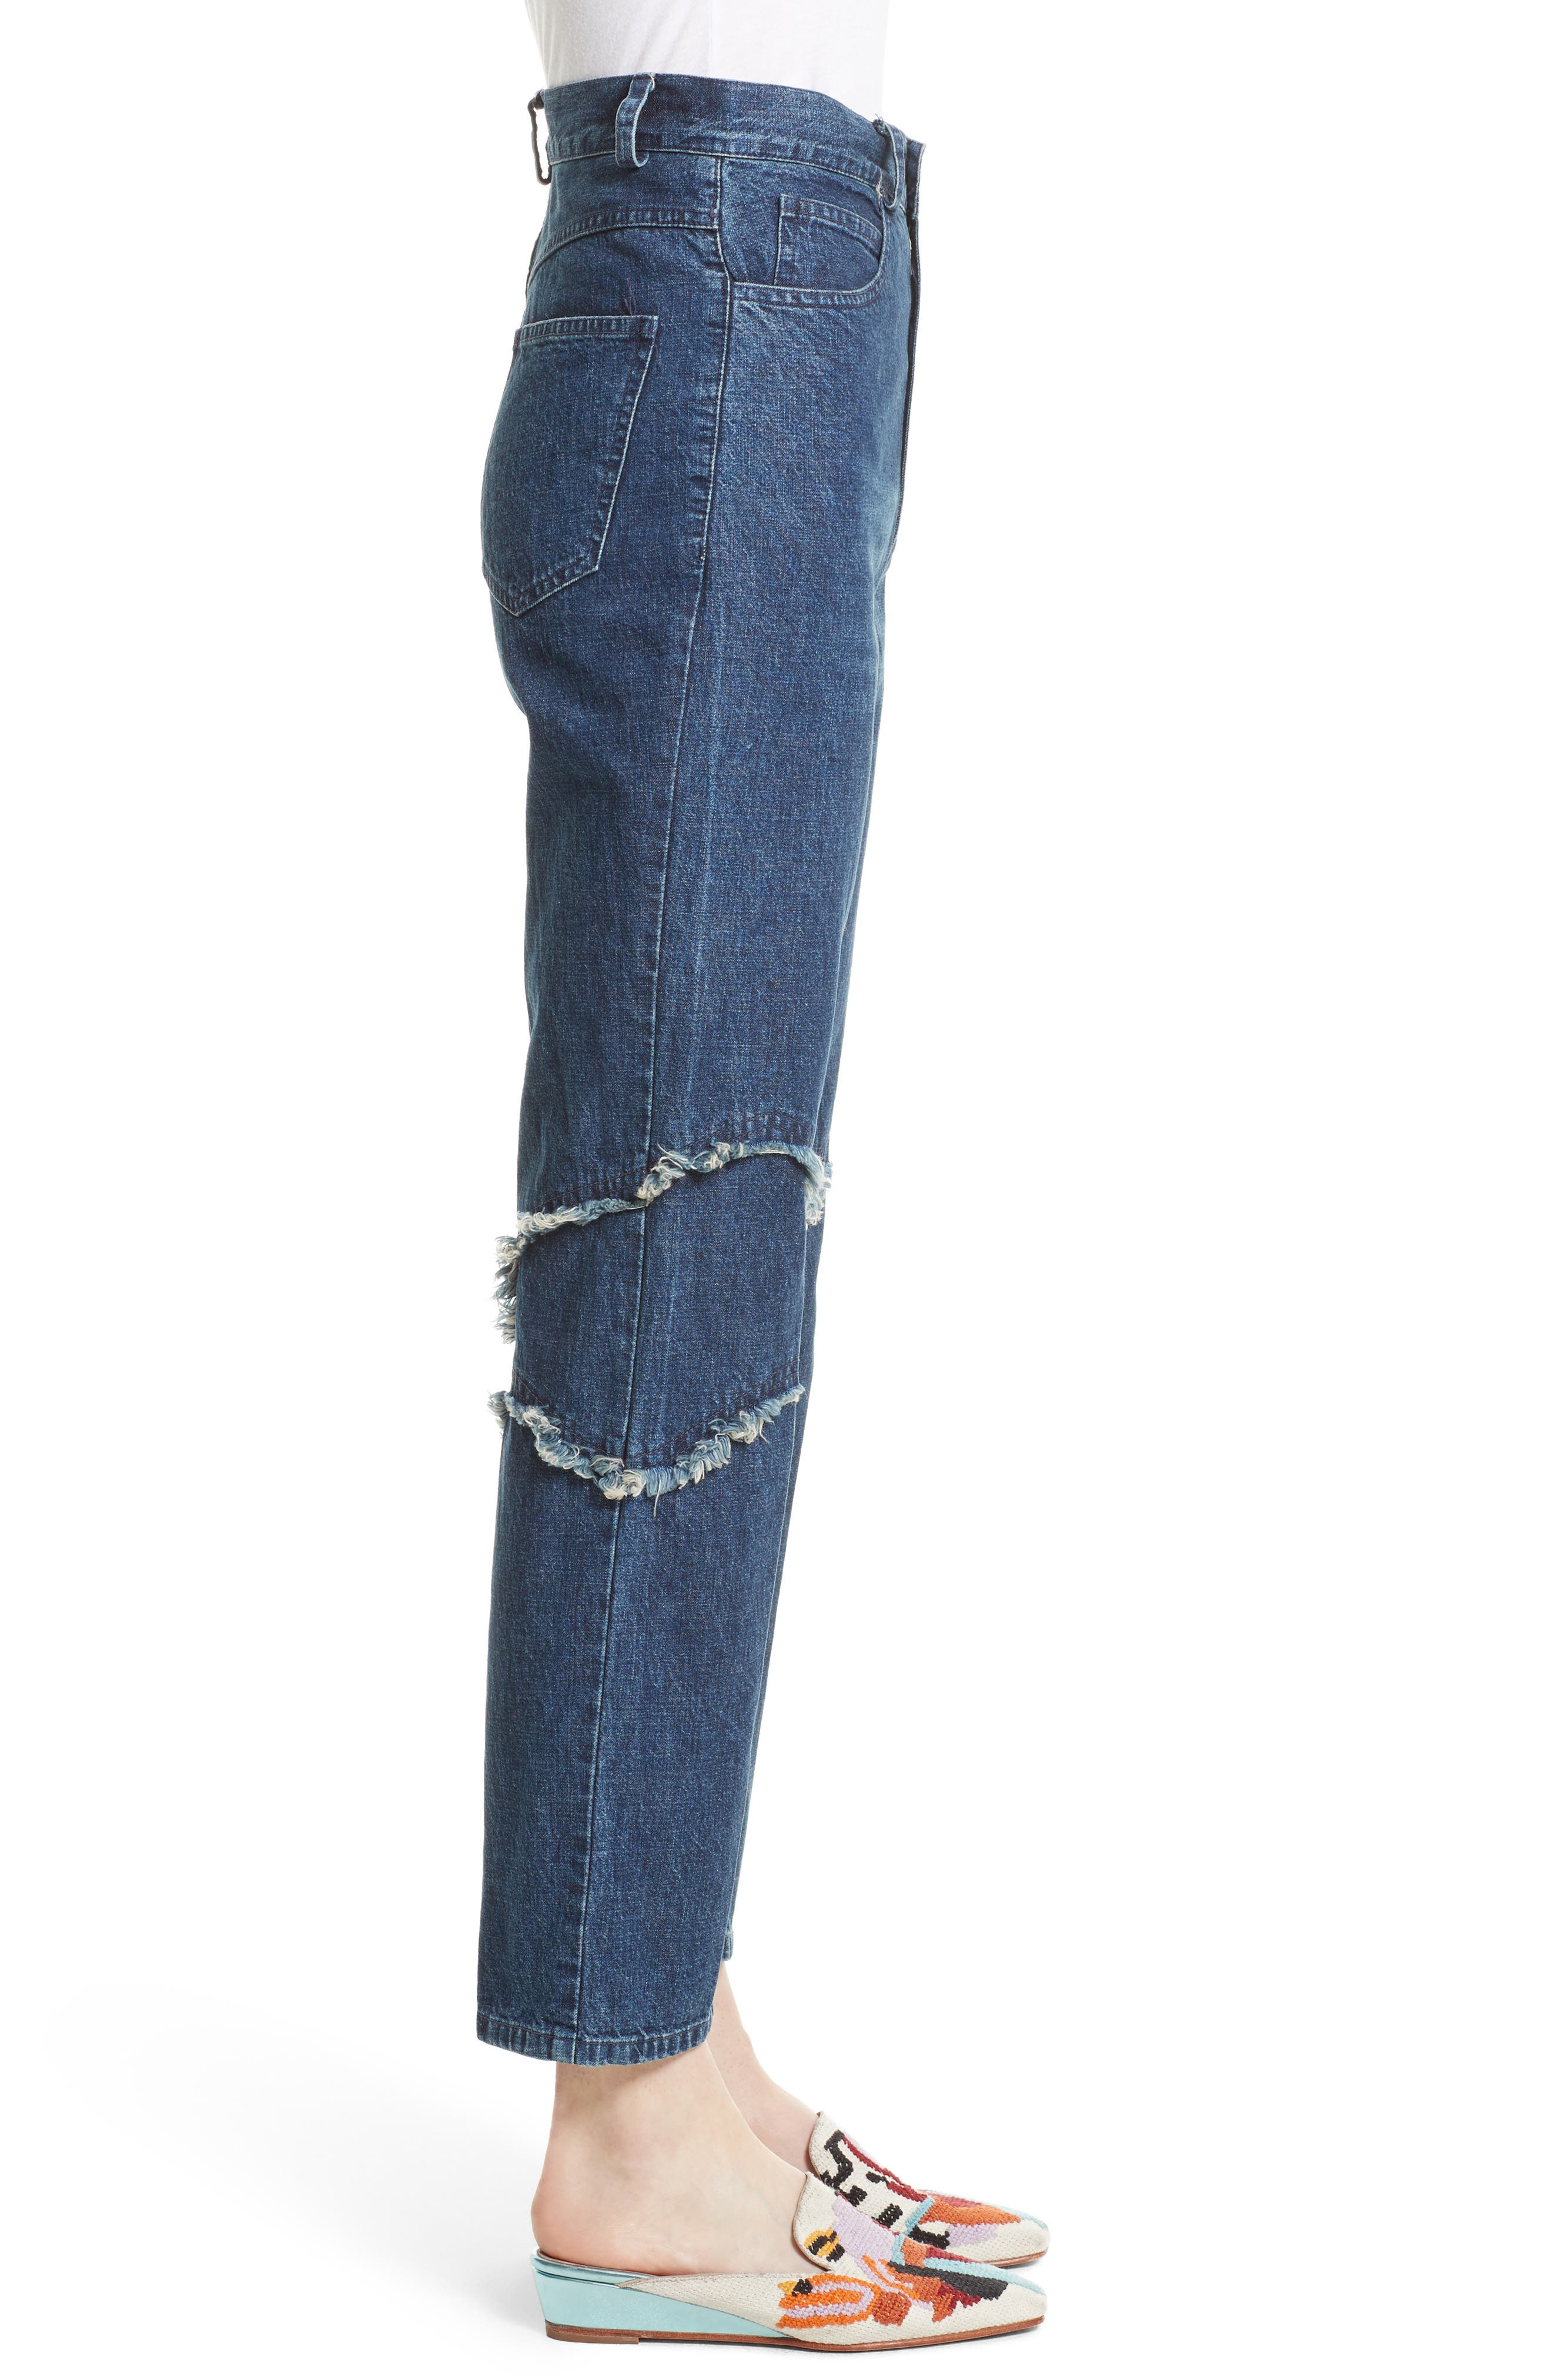 Ticklers Frayed High Waist Crop Jeans,                             Alternate thumbnail 3, color,                             420